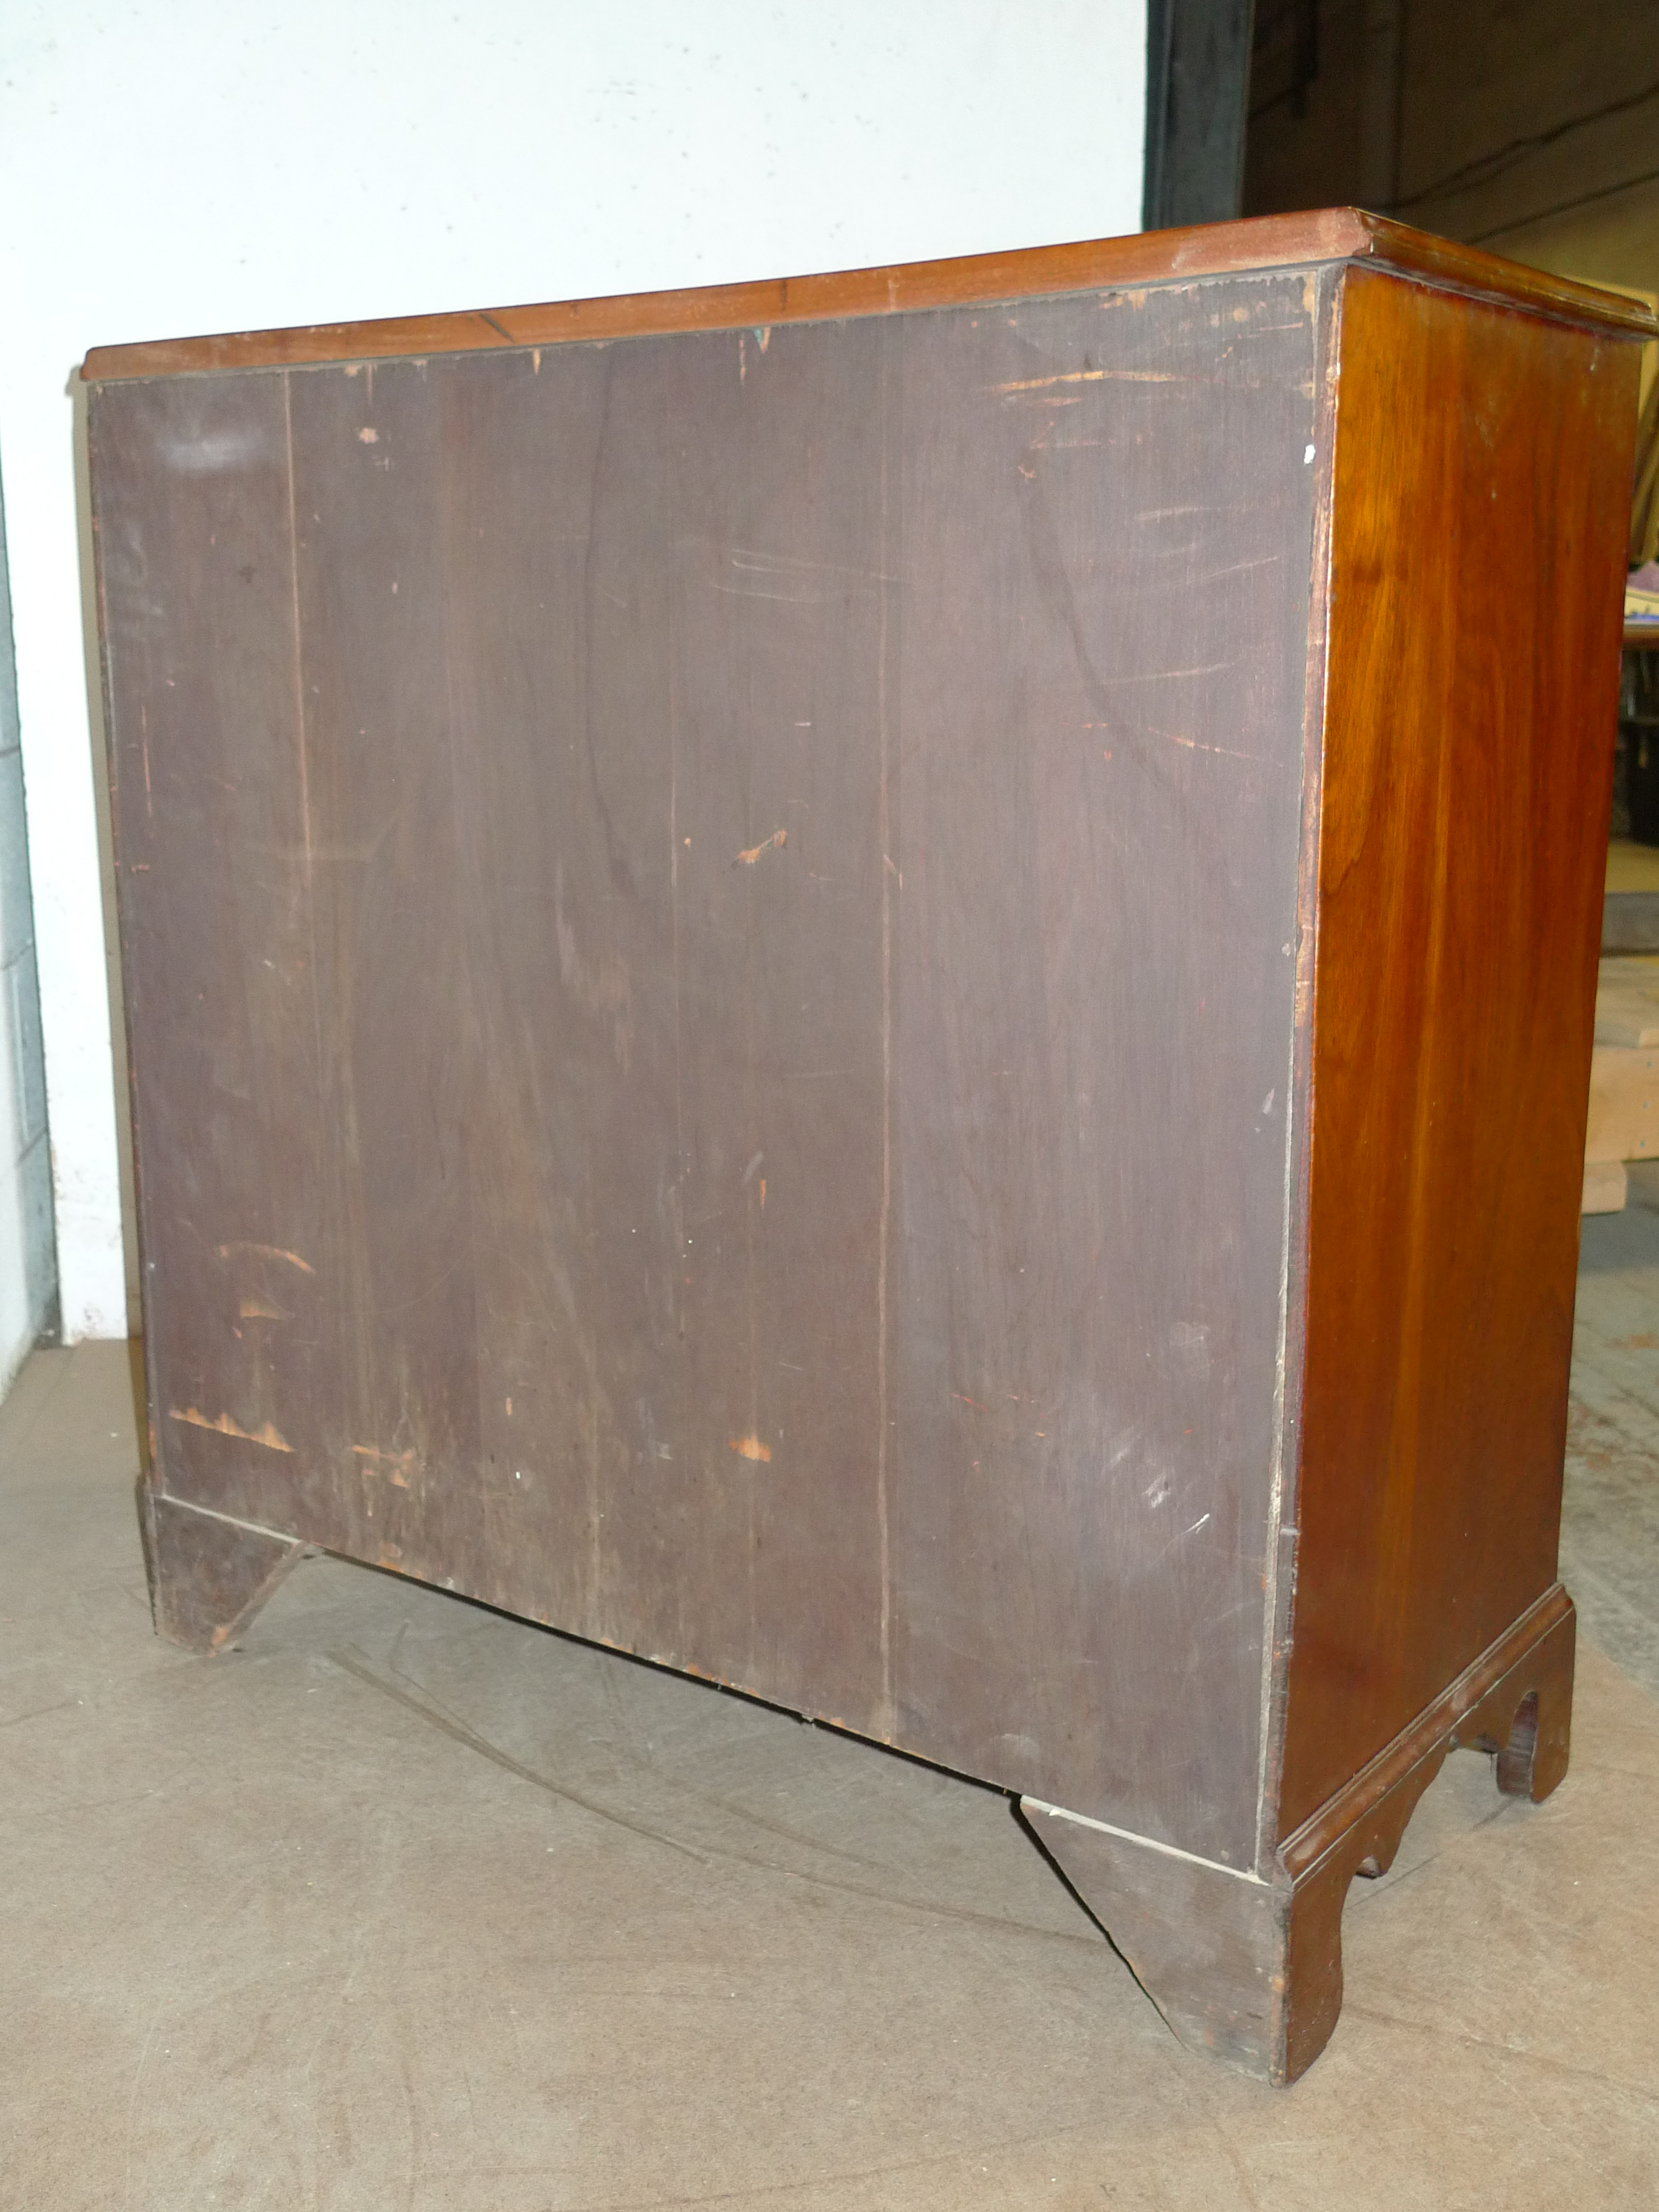 Amer Federal Period Mahogany Chest 4 Drawers1790 Antique